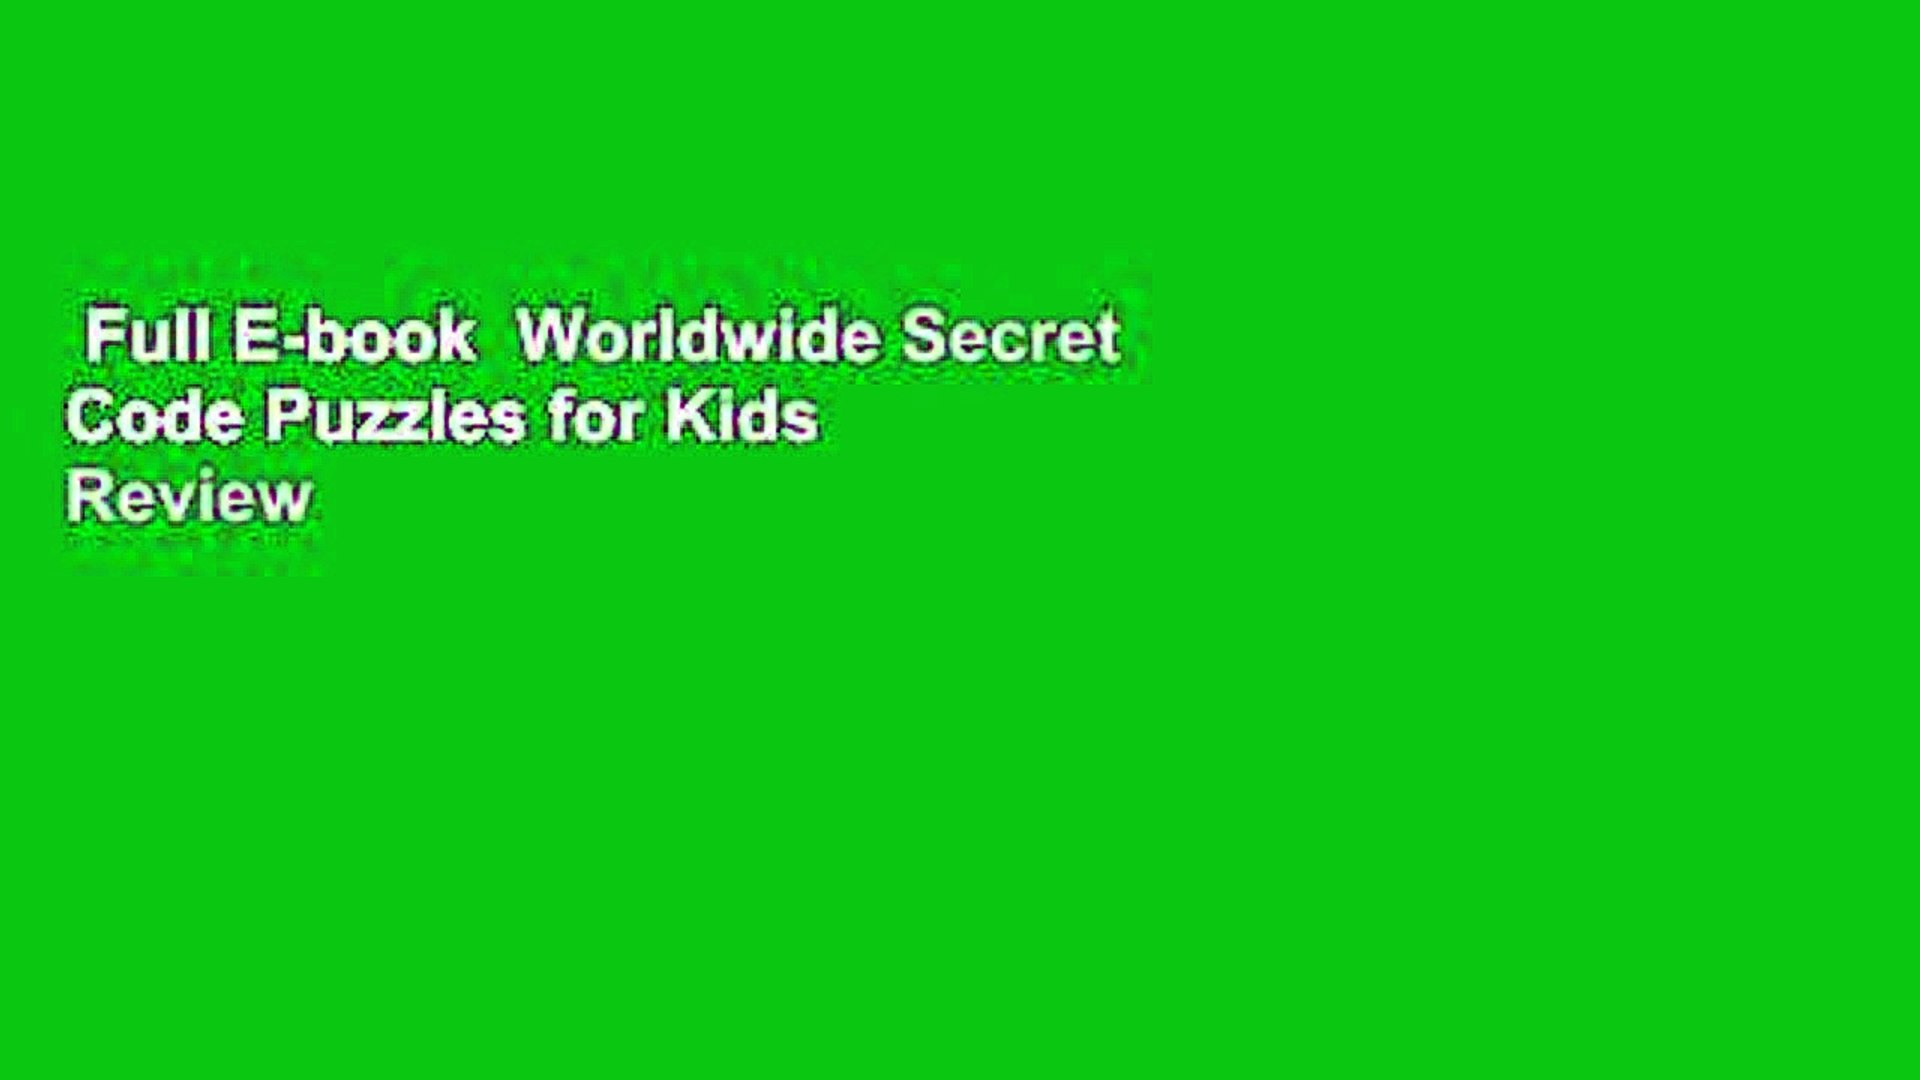 Full E-book Worldwide Secret Code Puzzles for Kids Review